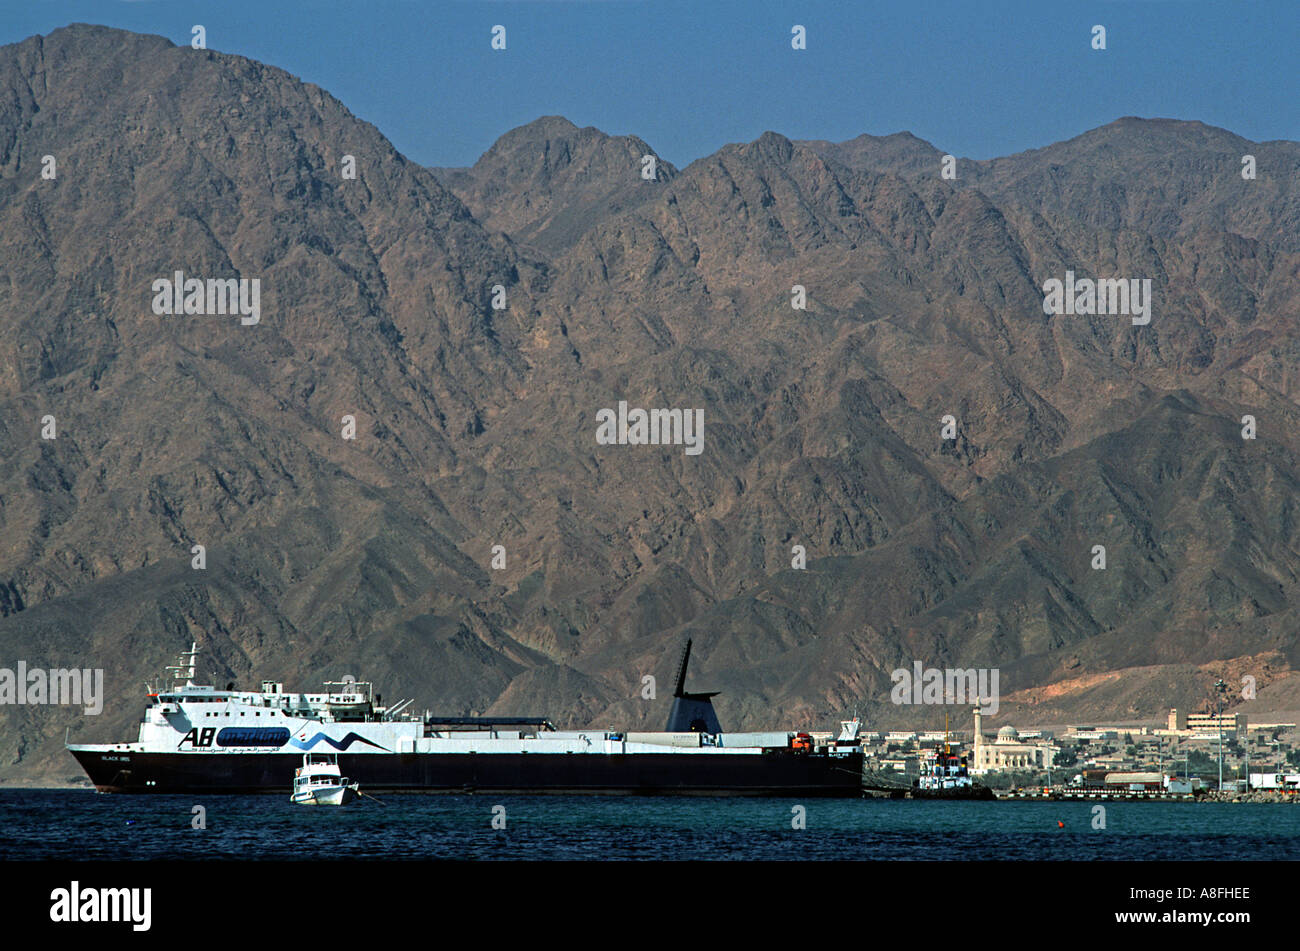 The ferry to Aqaba Jordan leaves twice daily from Nuweiba Red Sea coast at Nuweiba north of Sharm El Sheik Egypt Middle East - Stock Image